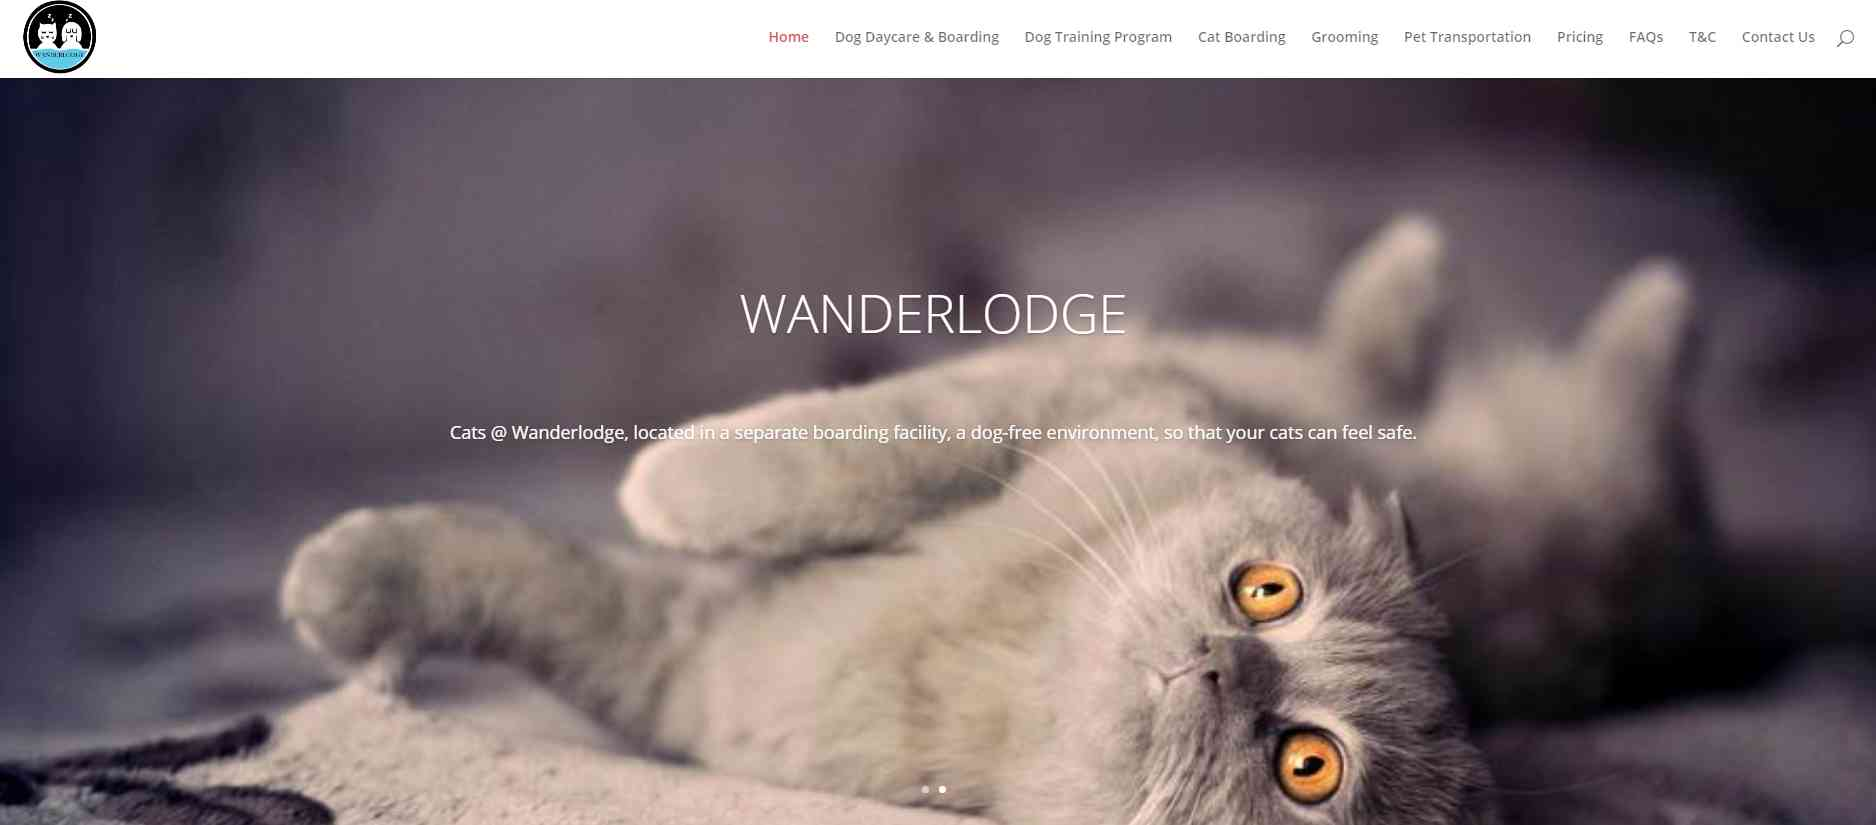 wander lodge Top Dog Boarding Services in Singapore